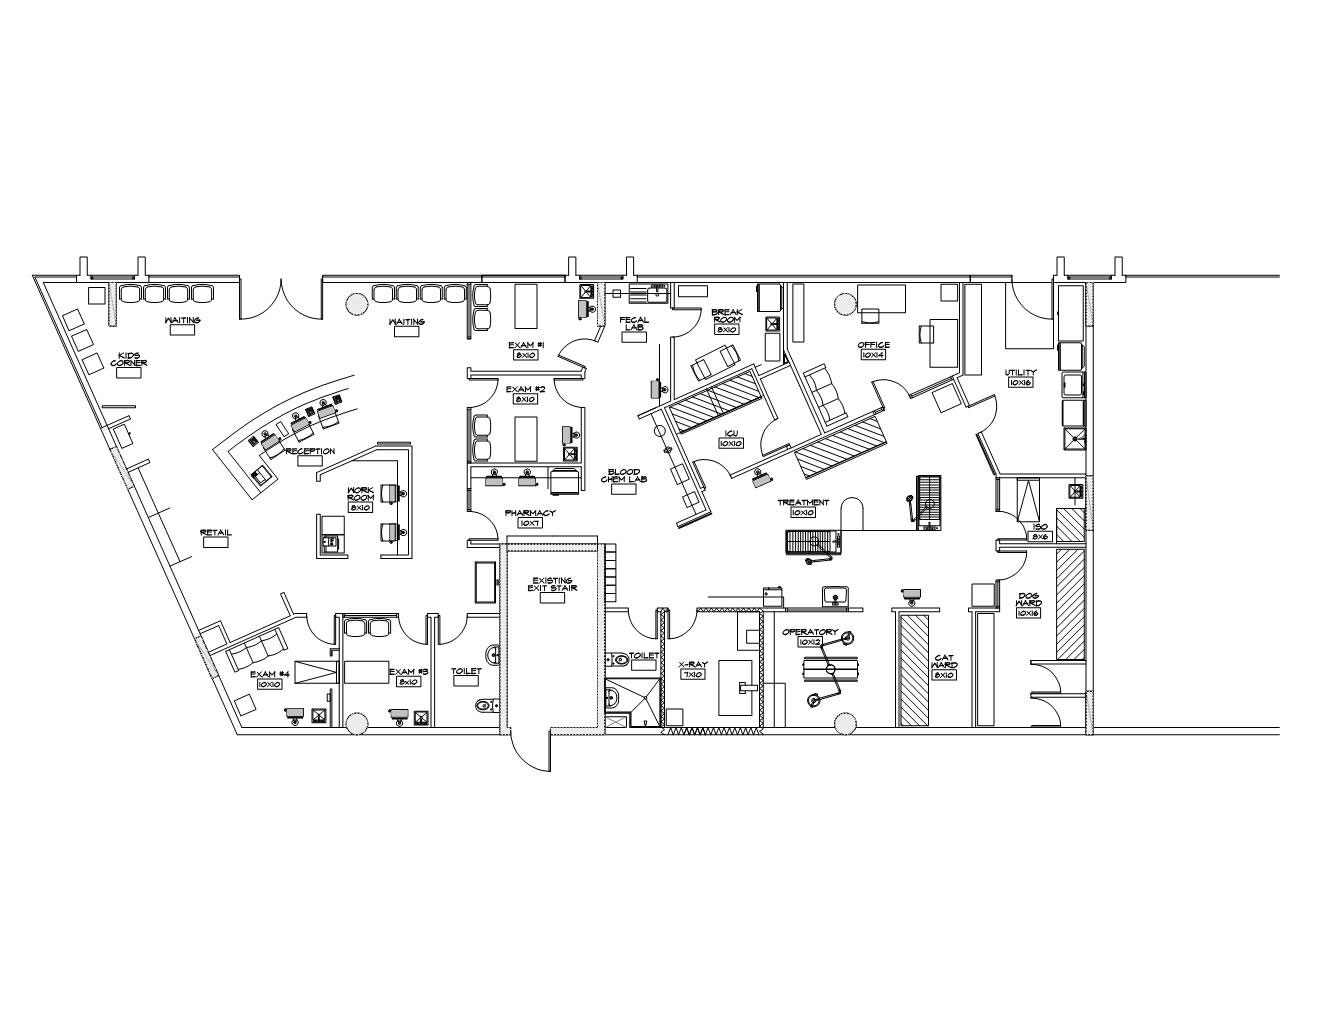 Vet Clinic Floor Plans: The DKC Veterinary Clinic—From Trials To Triumphs